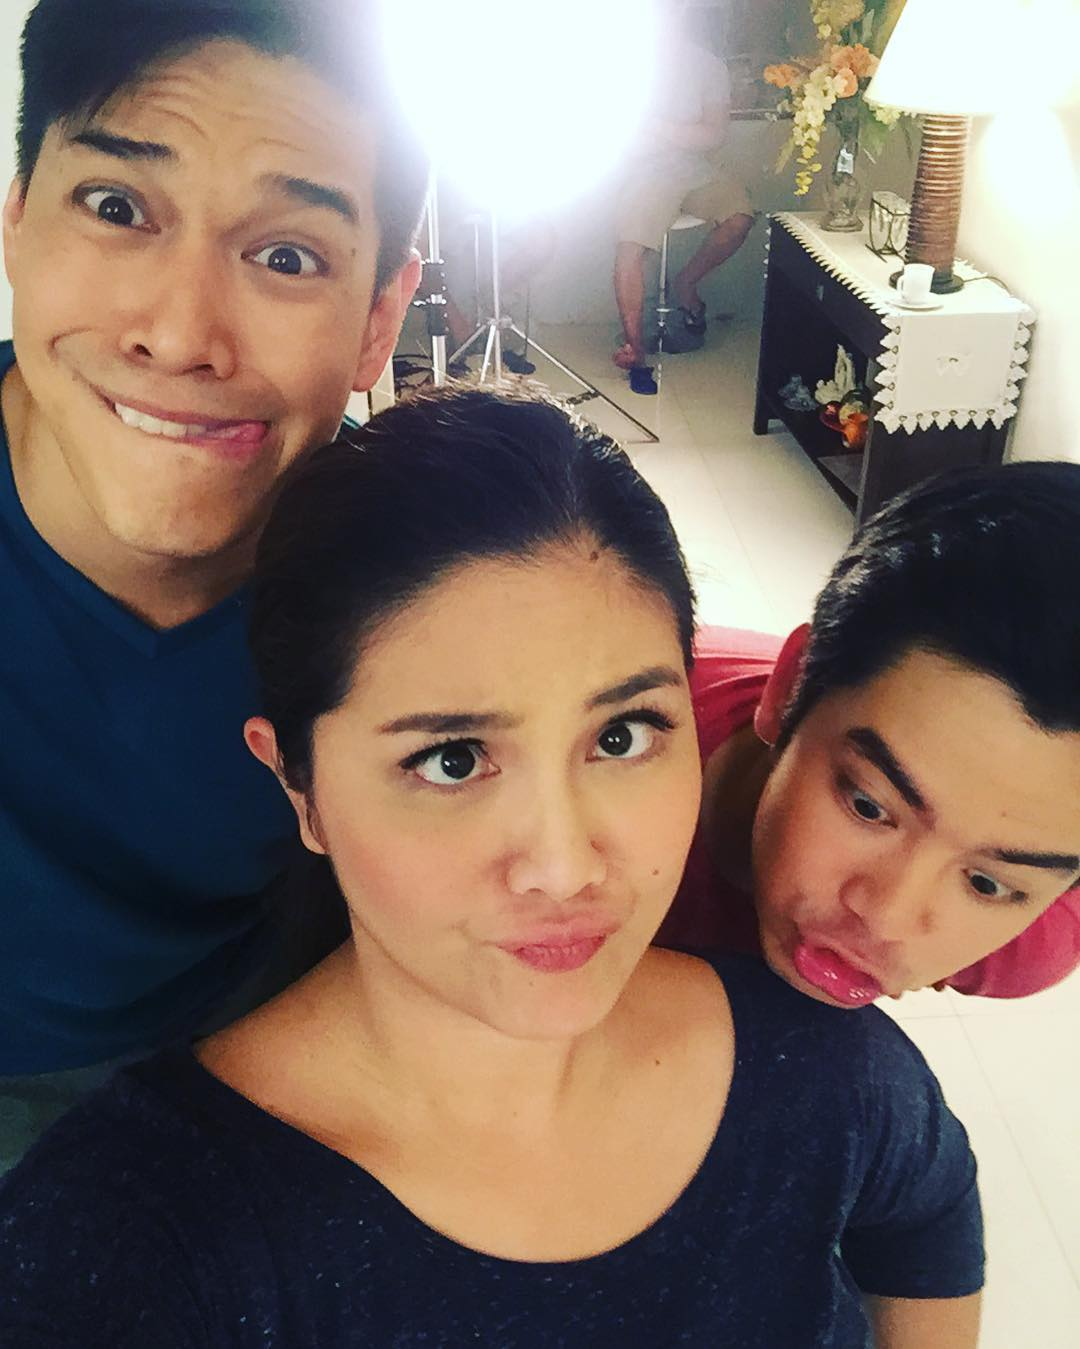 Alegre siblings: Seriously wacky off cam